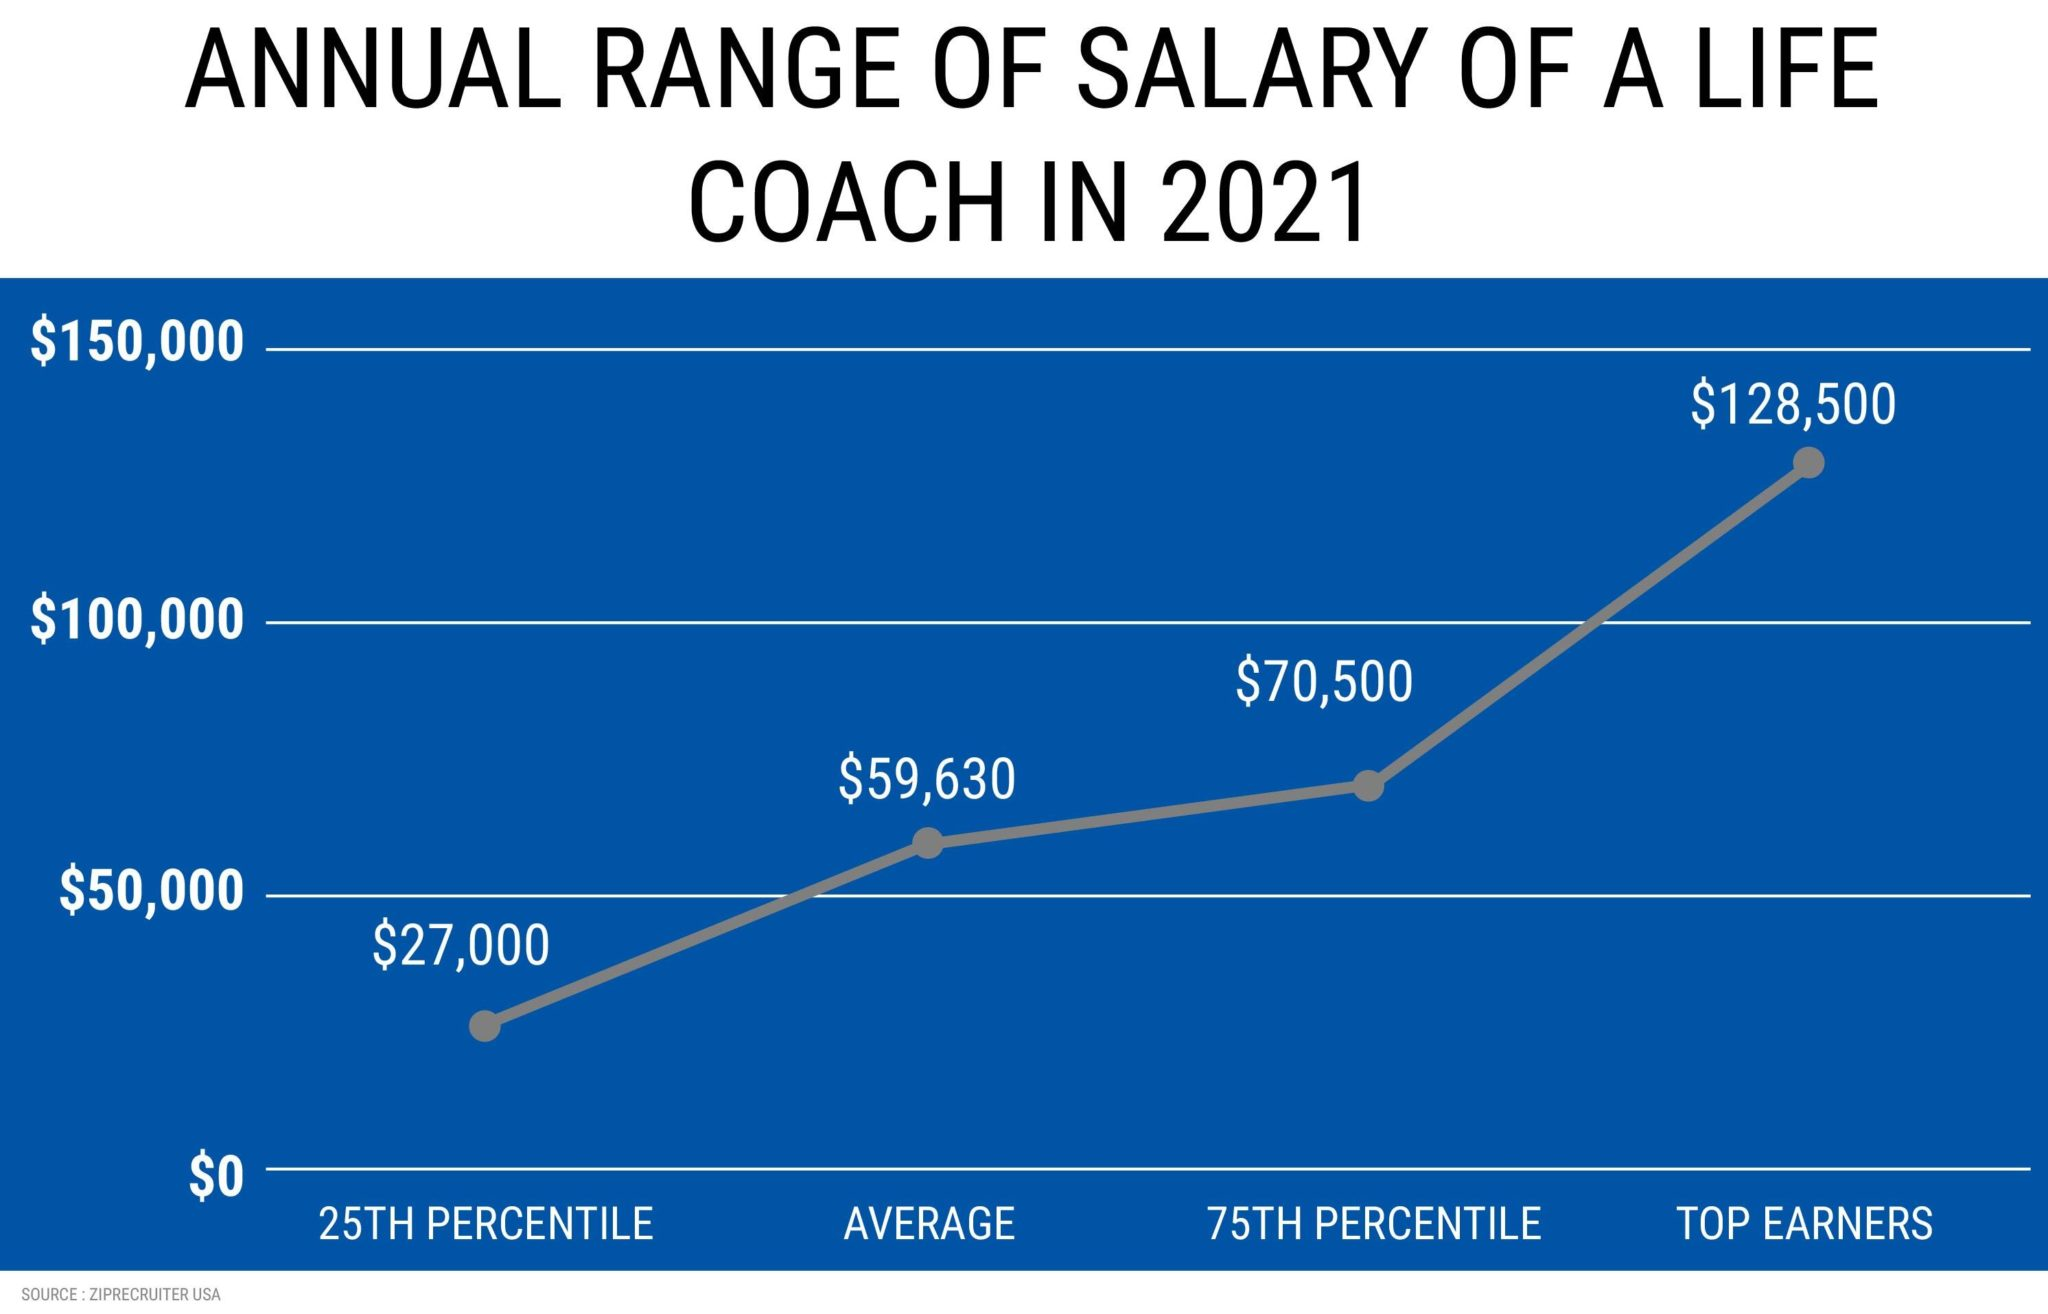 ANNUAL RANGE OF SALARY OF A LIFE COACH IN 2021